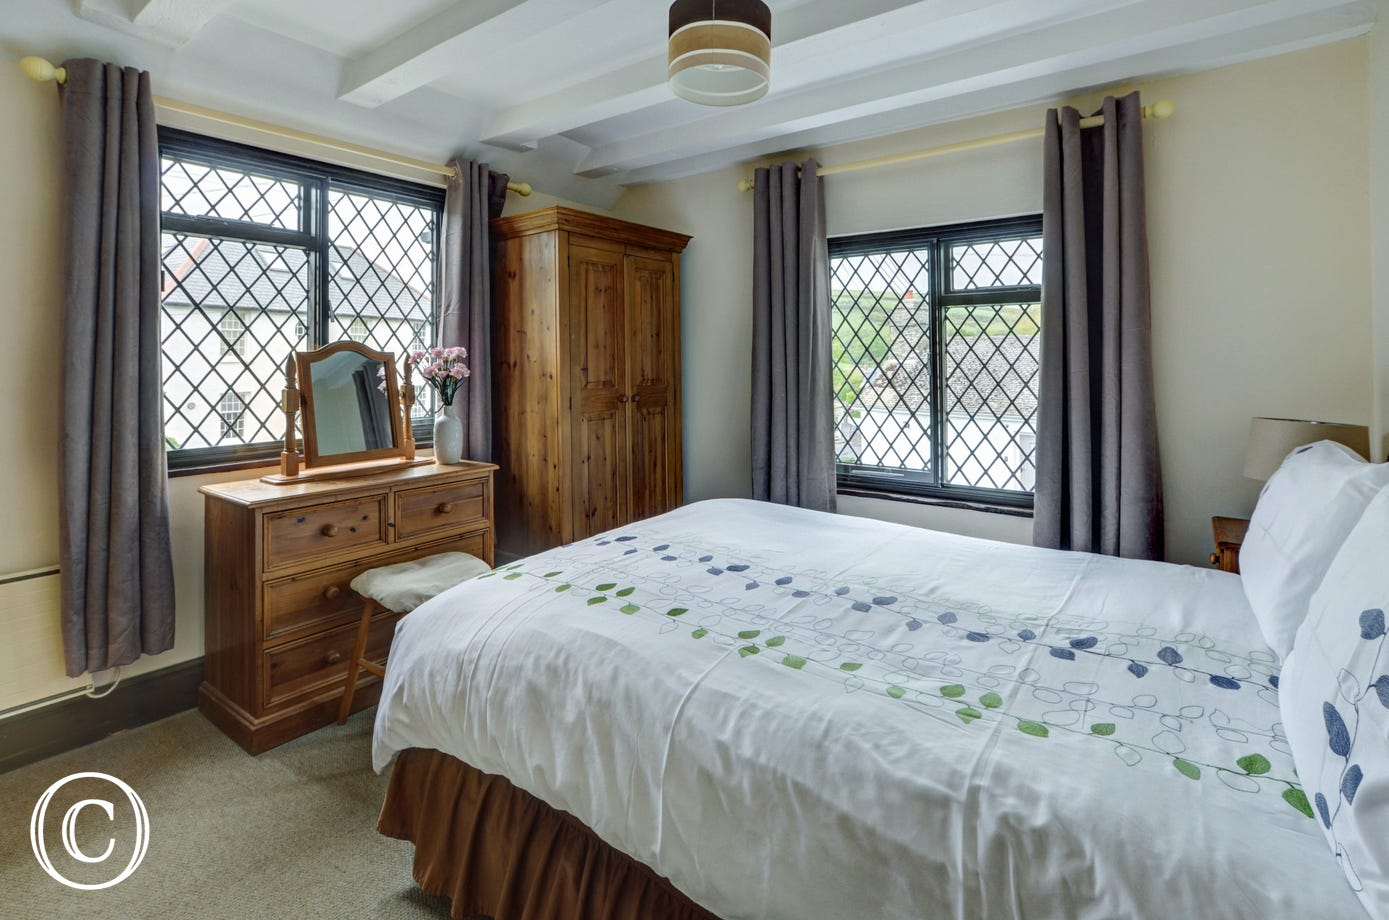 The master bedroom with double bed and ensuite bathroom